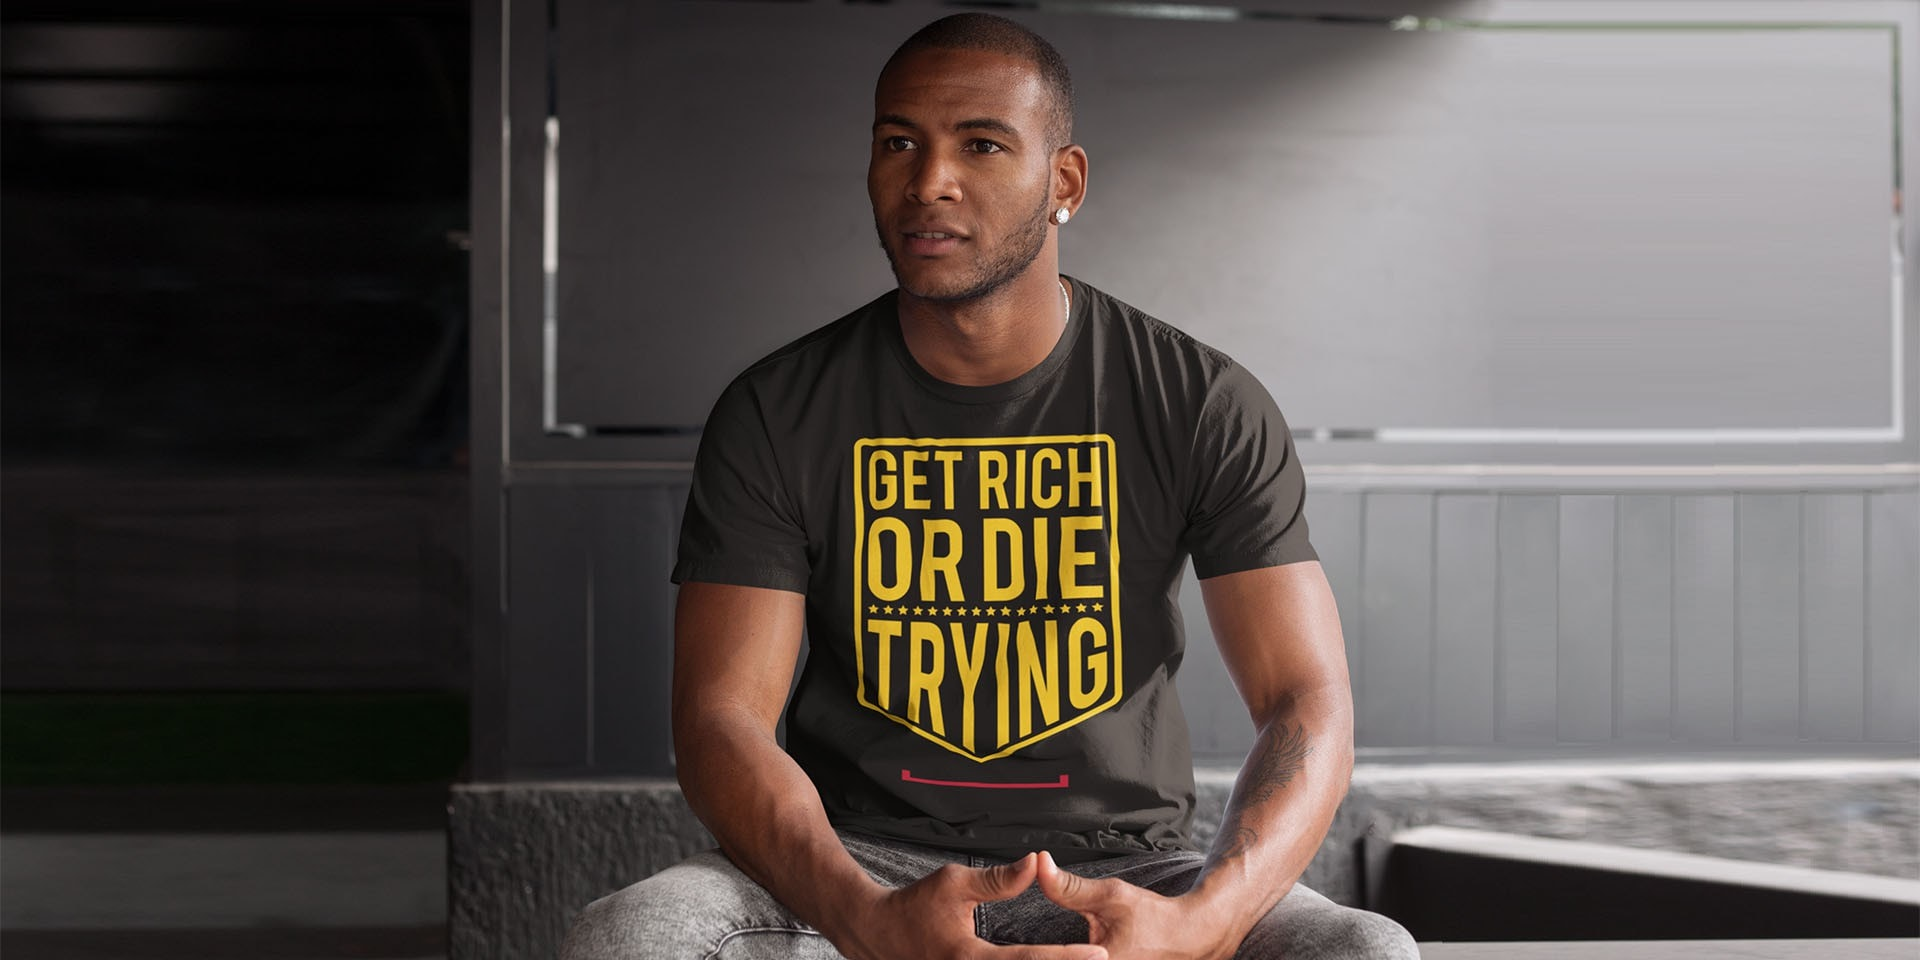 Get Rich or Die Trying Tshirt